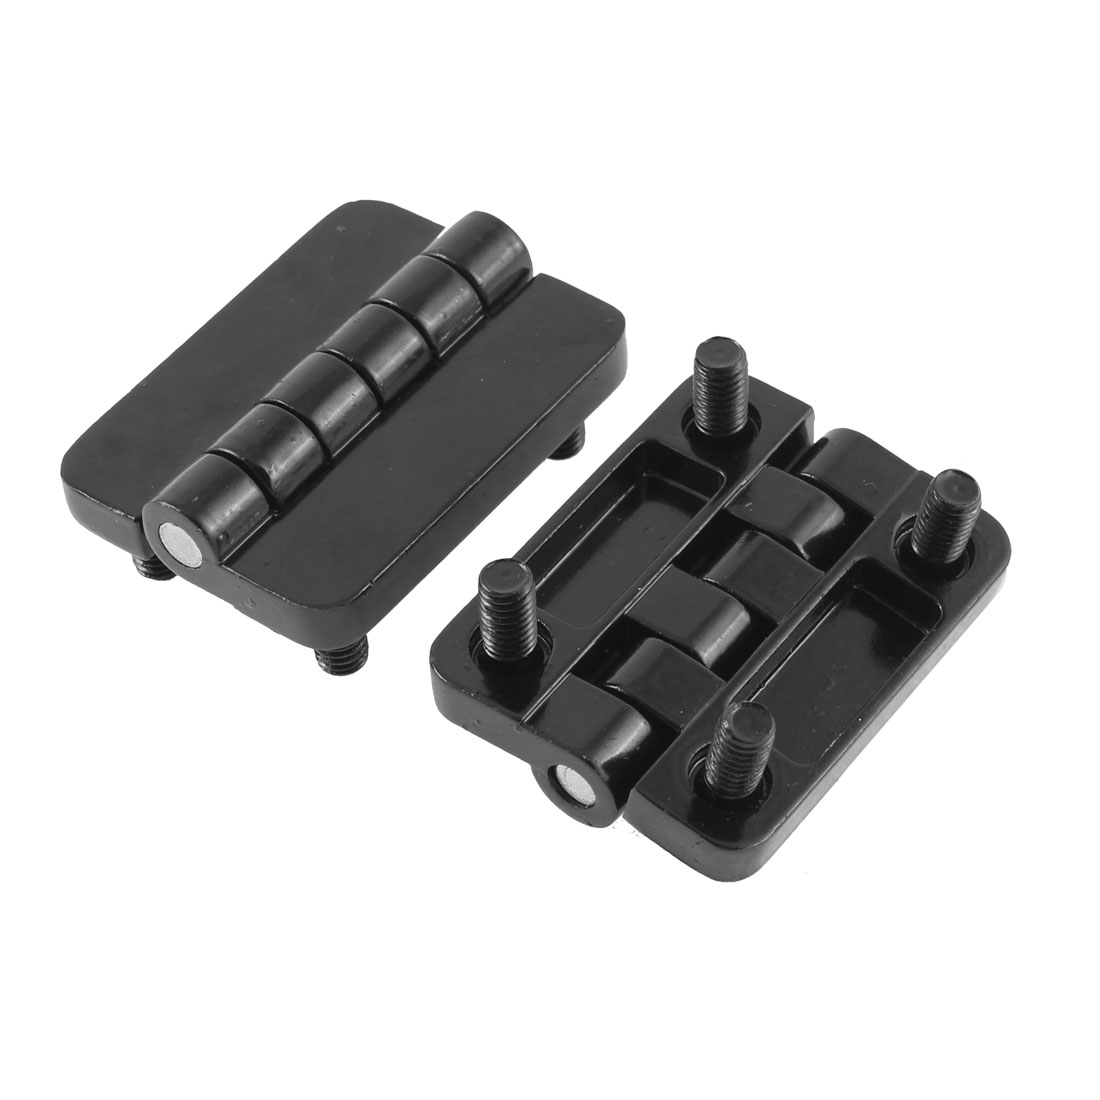 Cabinet Closet Door Screw On Type Butt Hinge Black 2Pcs